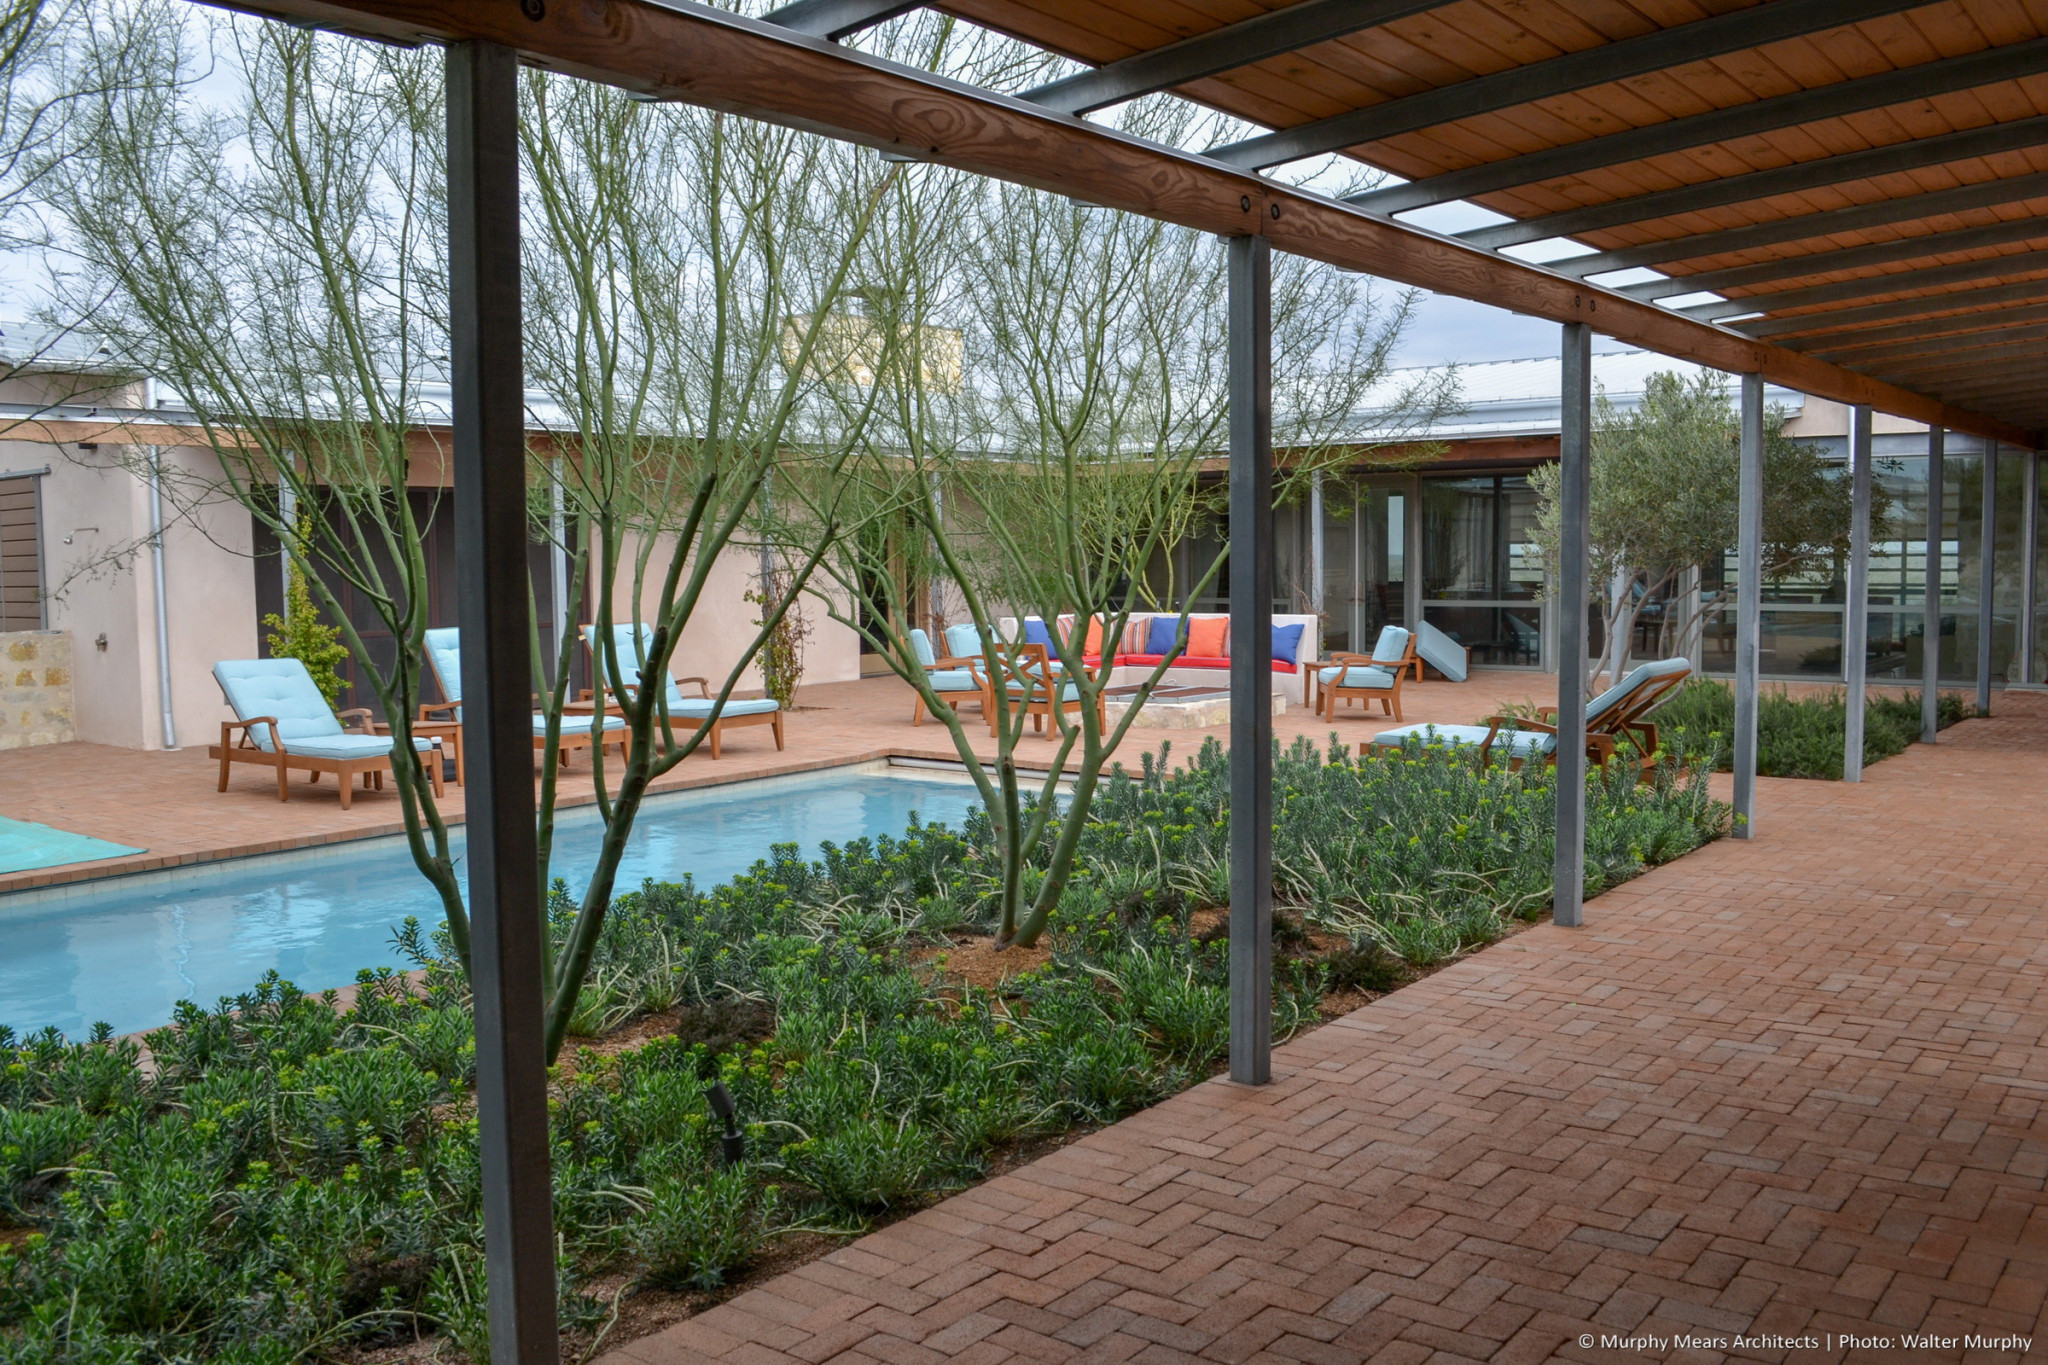 pool in brick paver courtyard with desert landscaping surrounded by galvanized steel and wood covered walkway